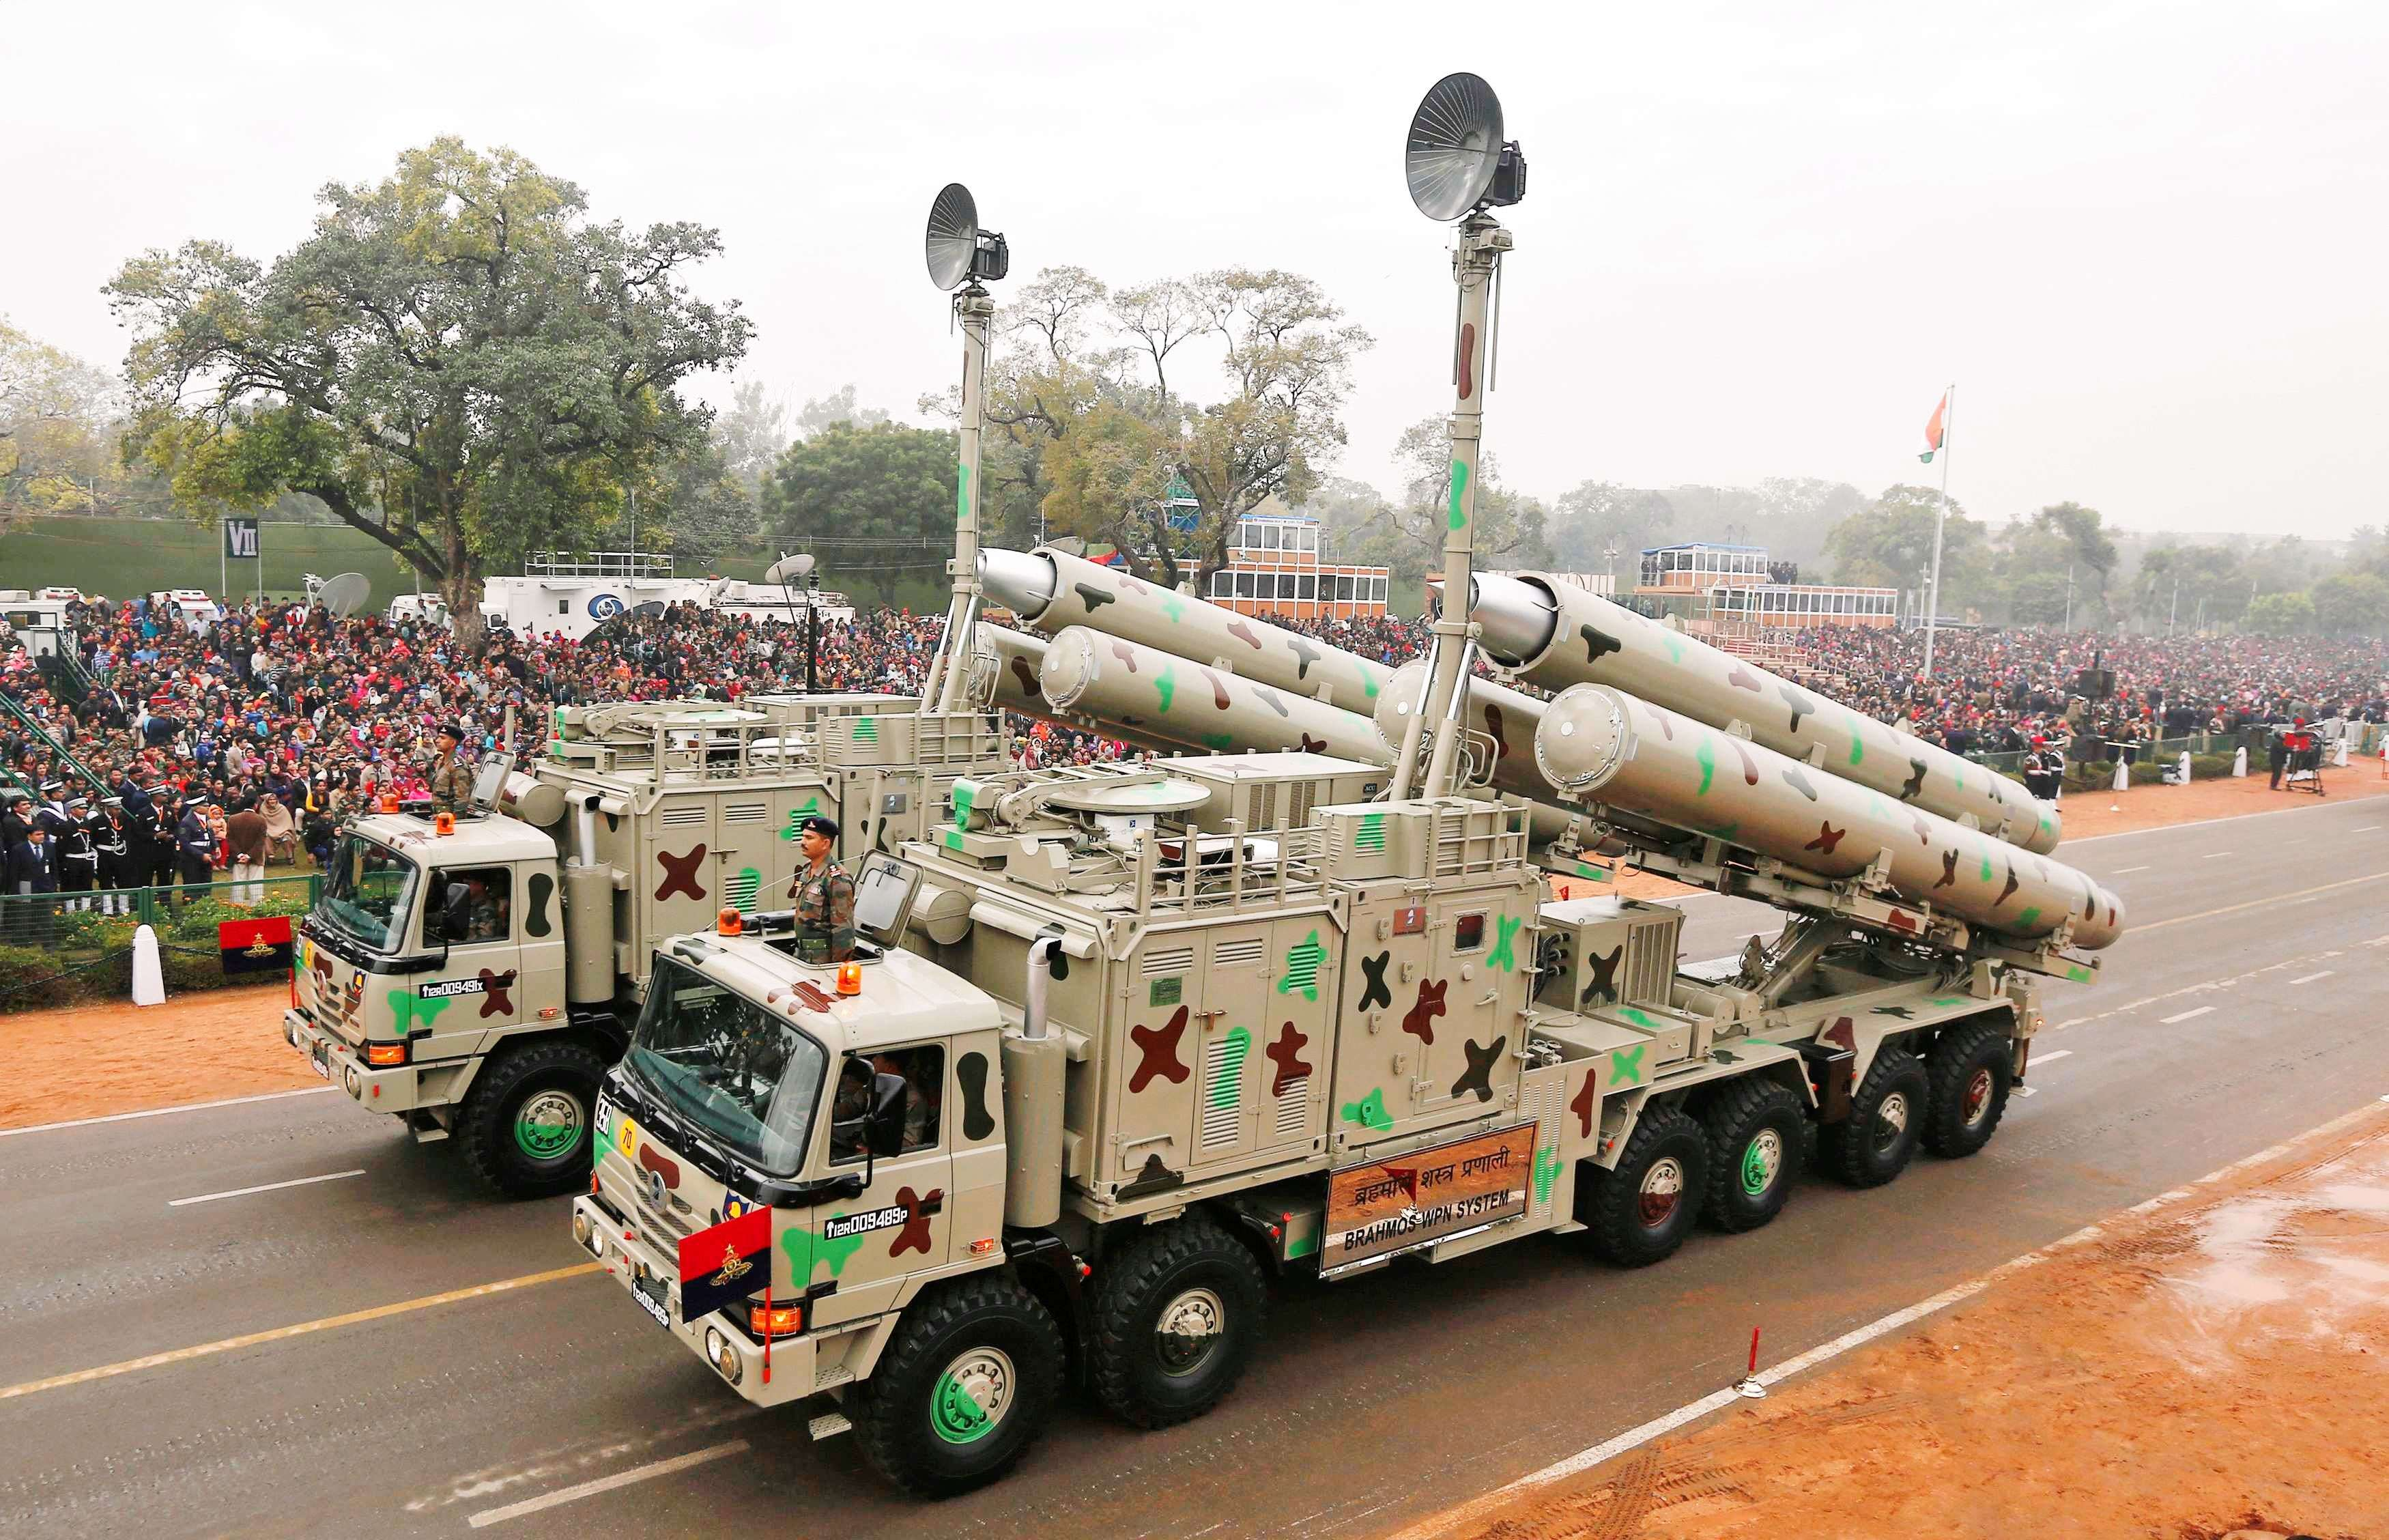 Indian Army's BrahMos weapon systems are displayed during a full dress rehearsal for the Republic Day parade in New Delhi. (REUTERS/Adnan Abidi)